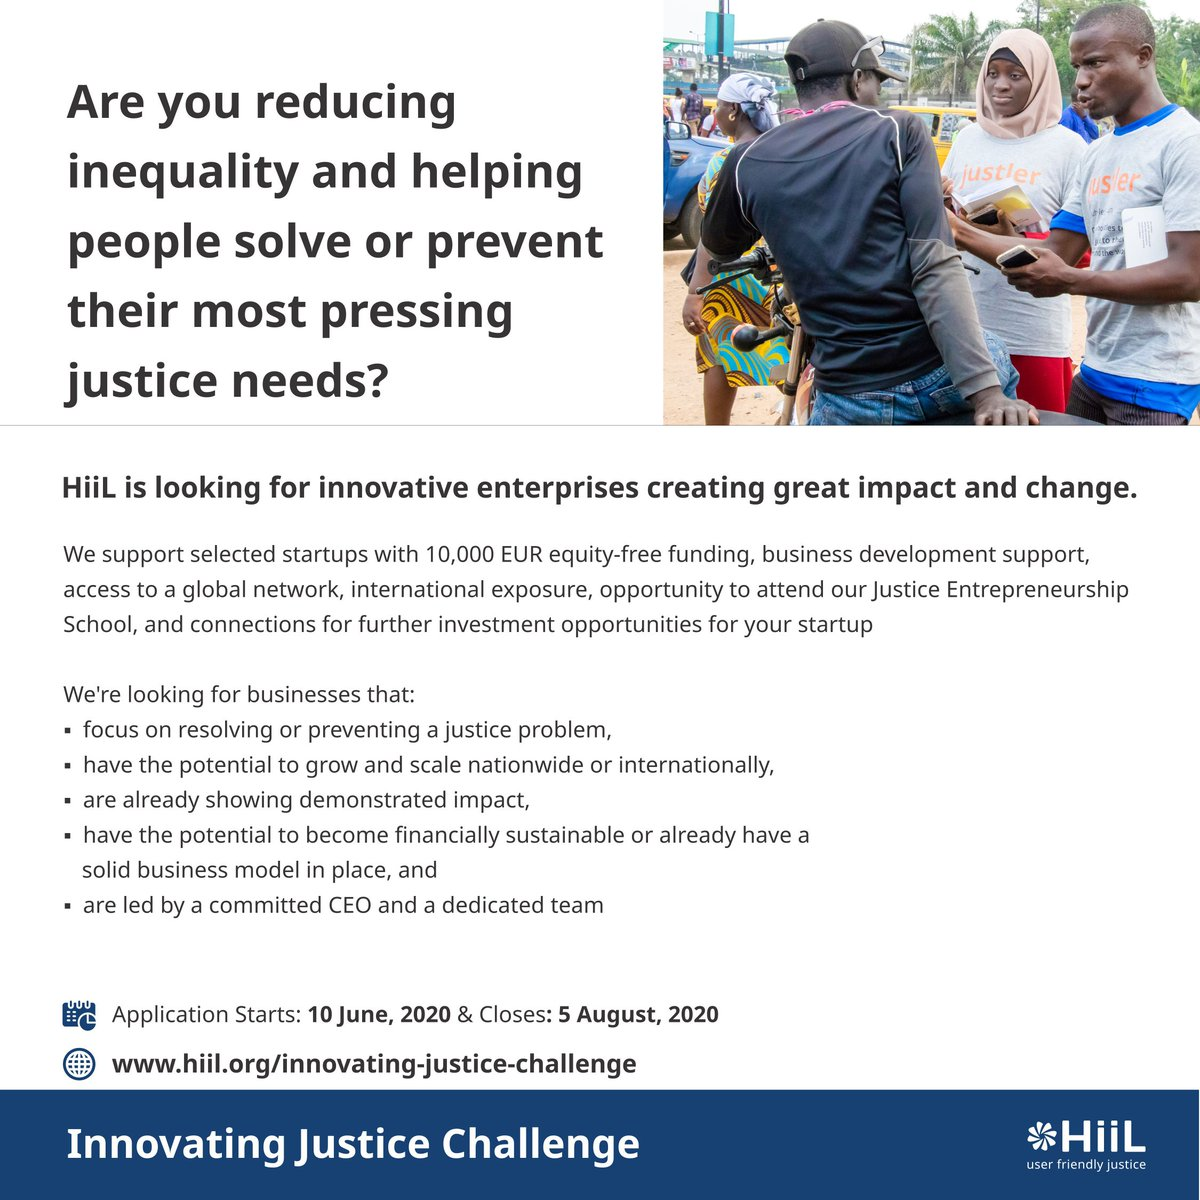 It's that time of the year again, the Innovating Justice Challenge is upon us! Please click on the link to apply if you are making justice more accessible. https://t.co/fc1aq6pgRD https://t.co/pX4CvlNBkO